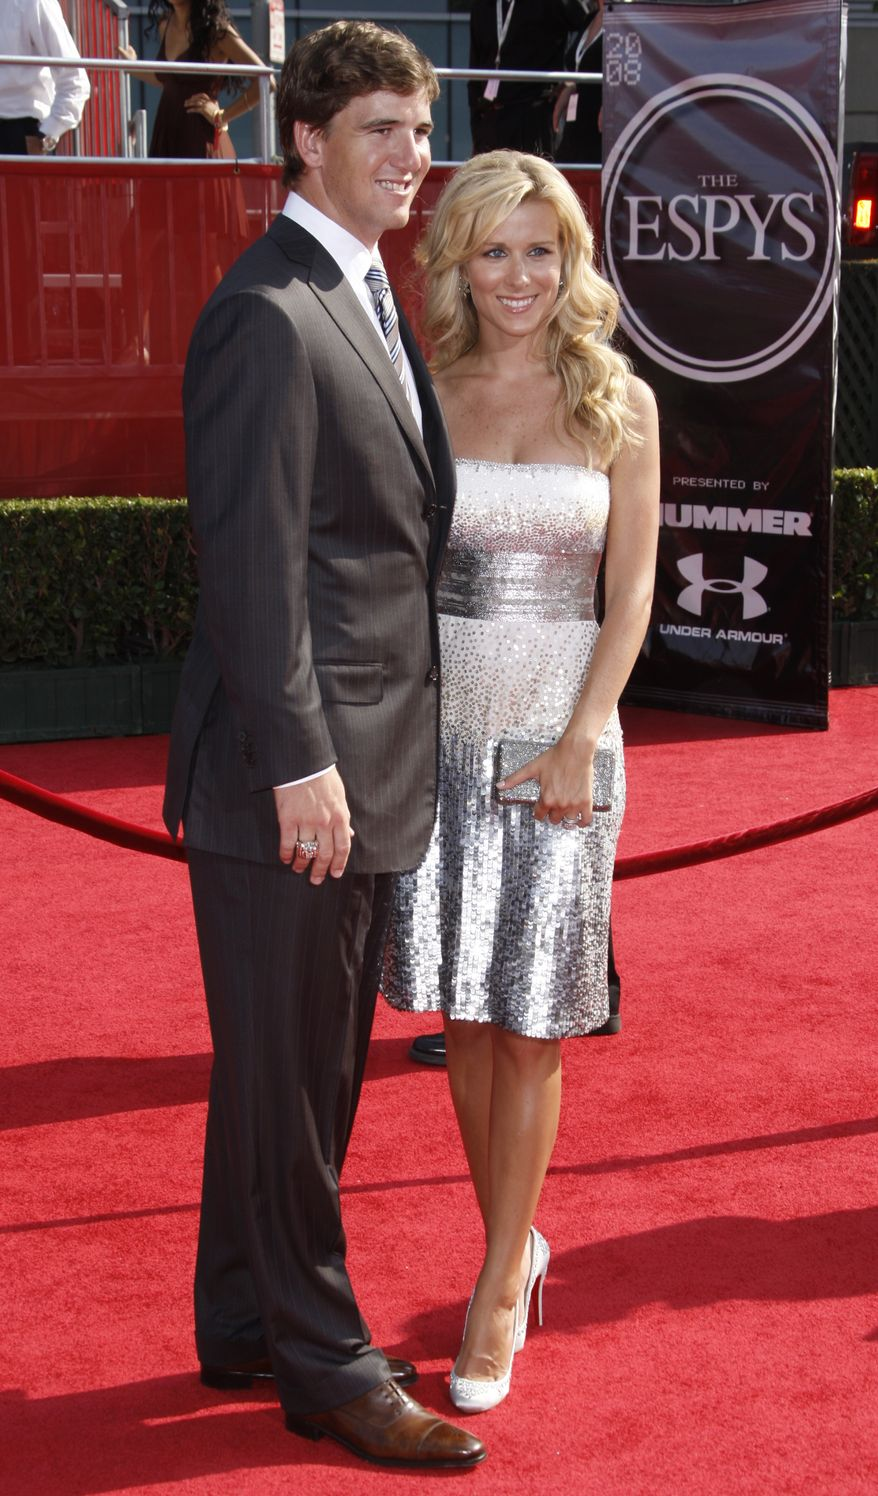 Eli Manning and his wife Abby McGrew arrive at the ESPYs Awards on Wednesday July 16, 2008 in Los Angeles. (AP Photo/Matt Sayles)